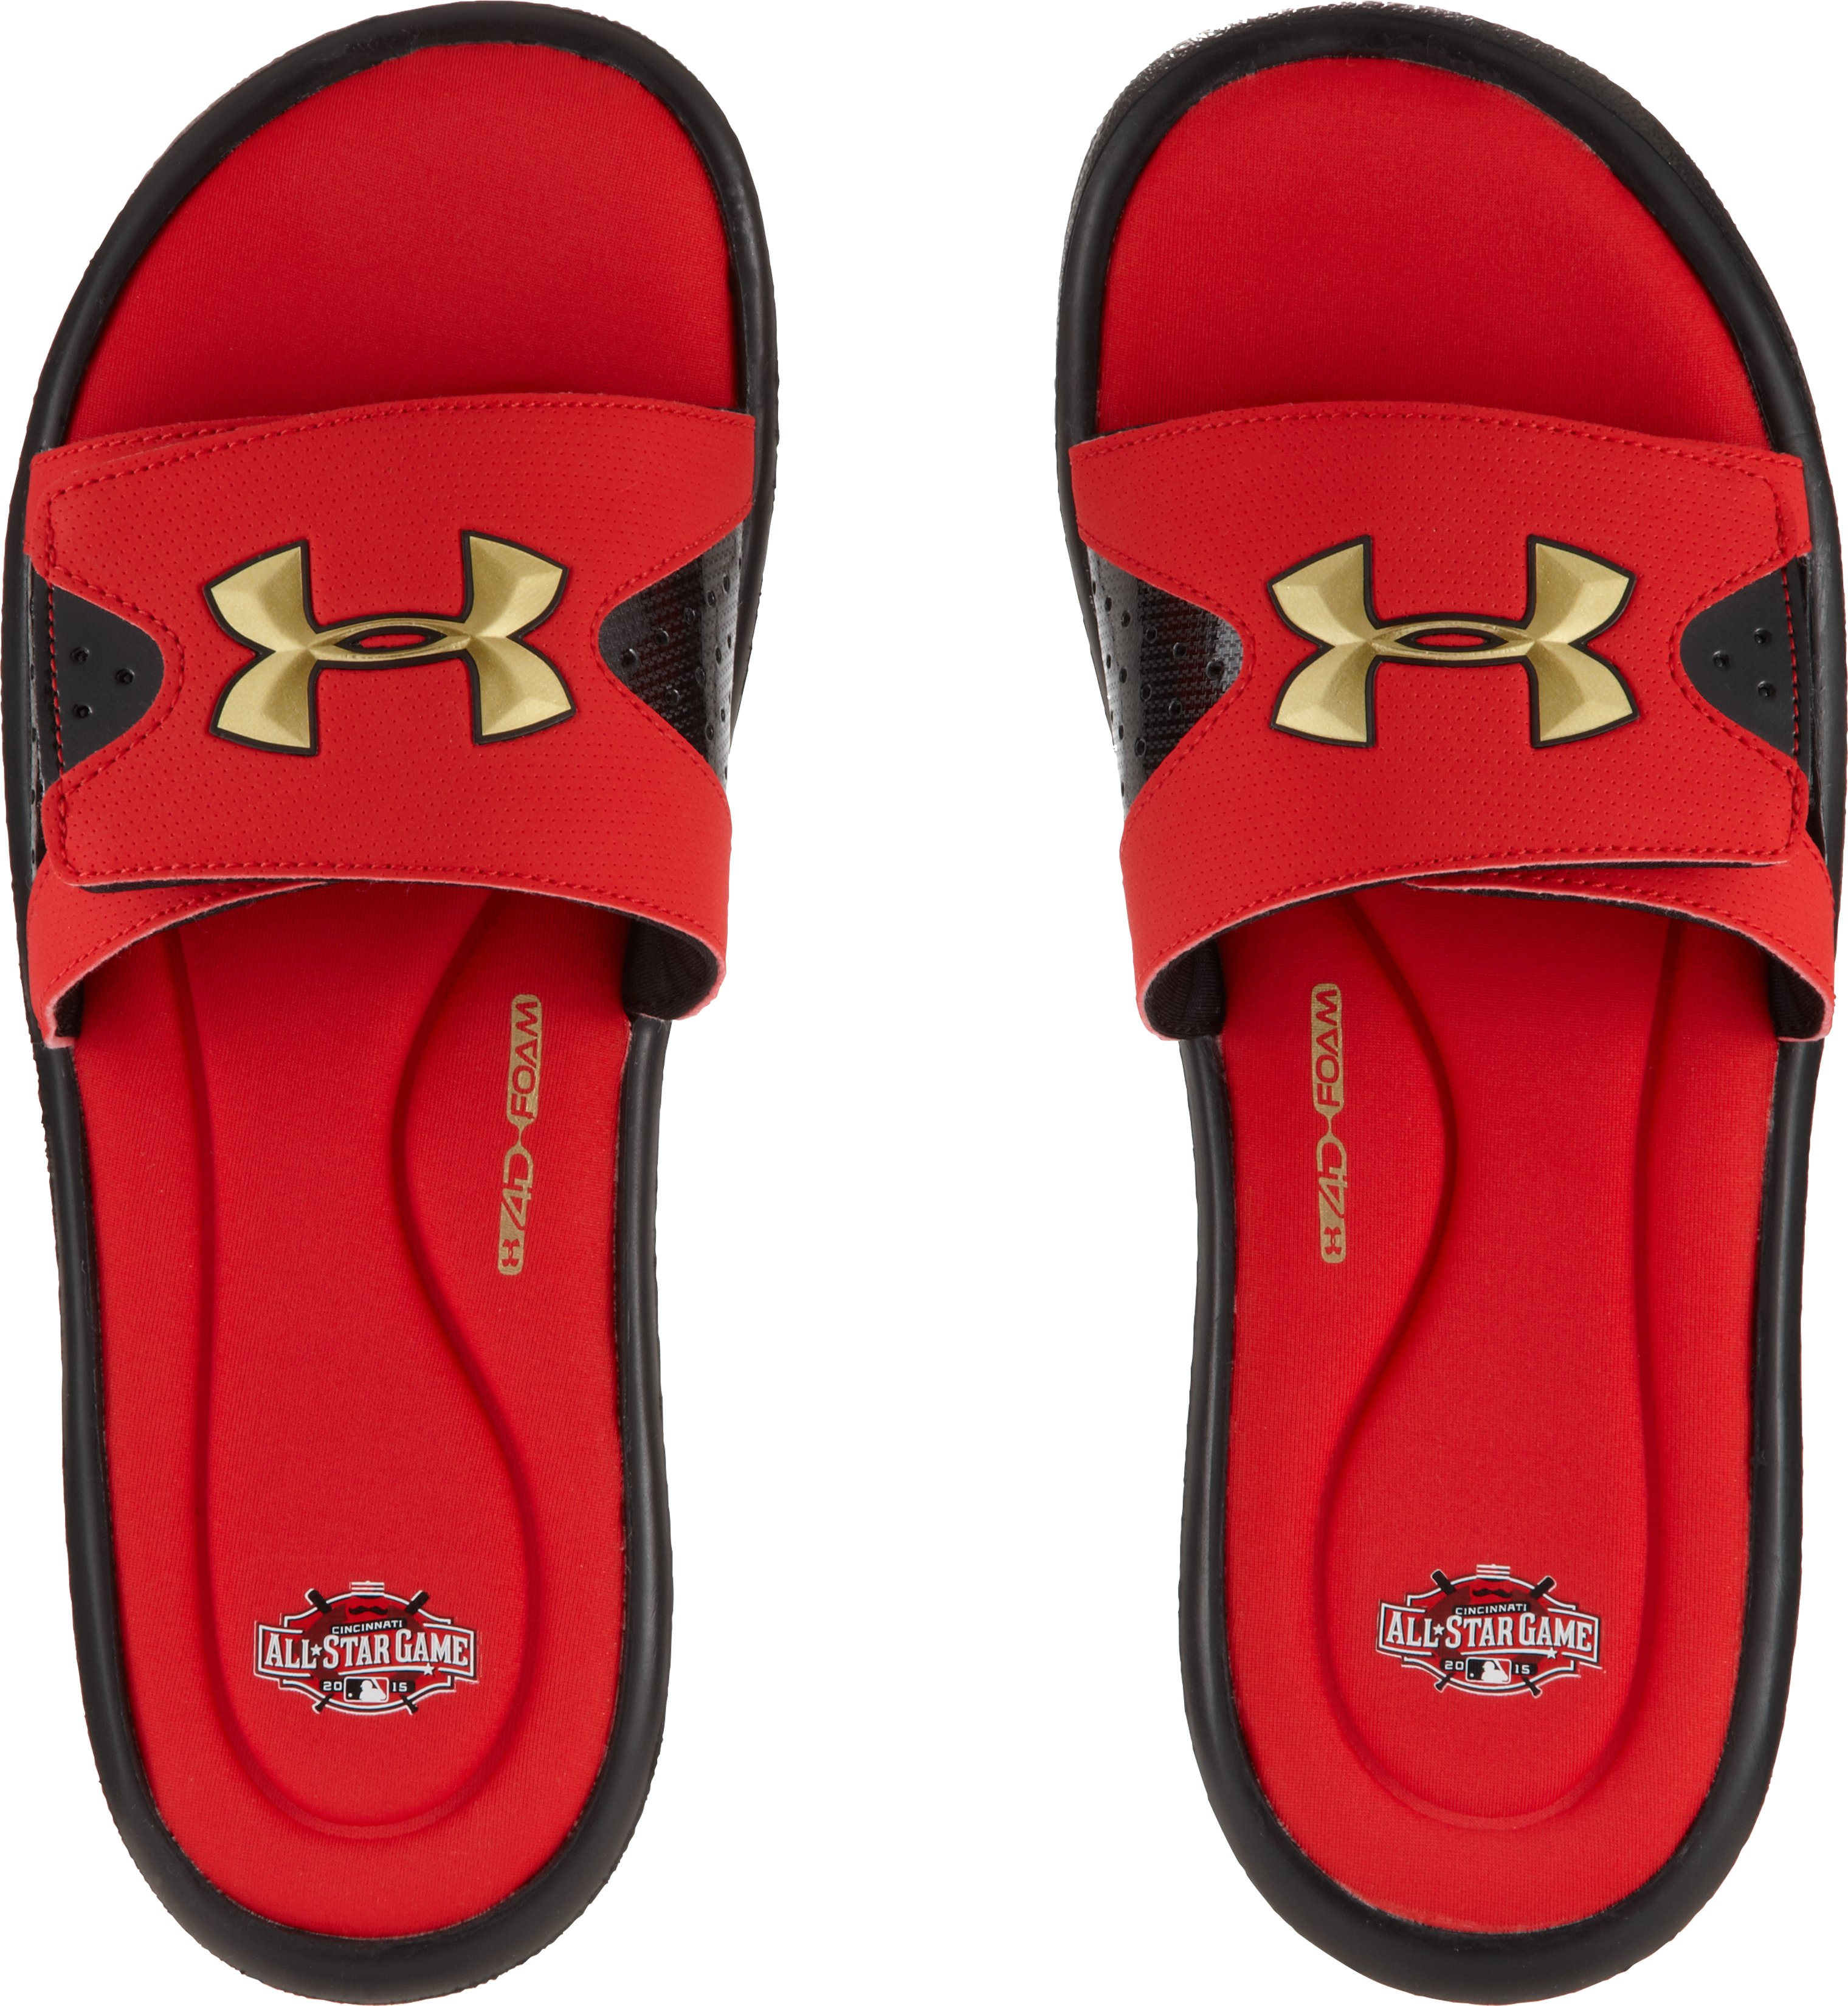 Men's UA Ignite IV Sandals – MLB All-Star Game Edition, Red,